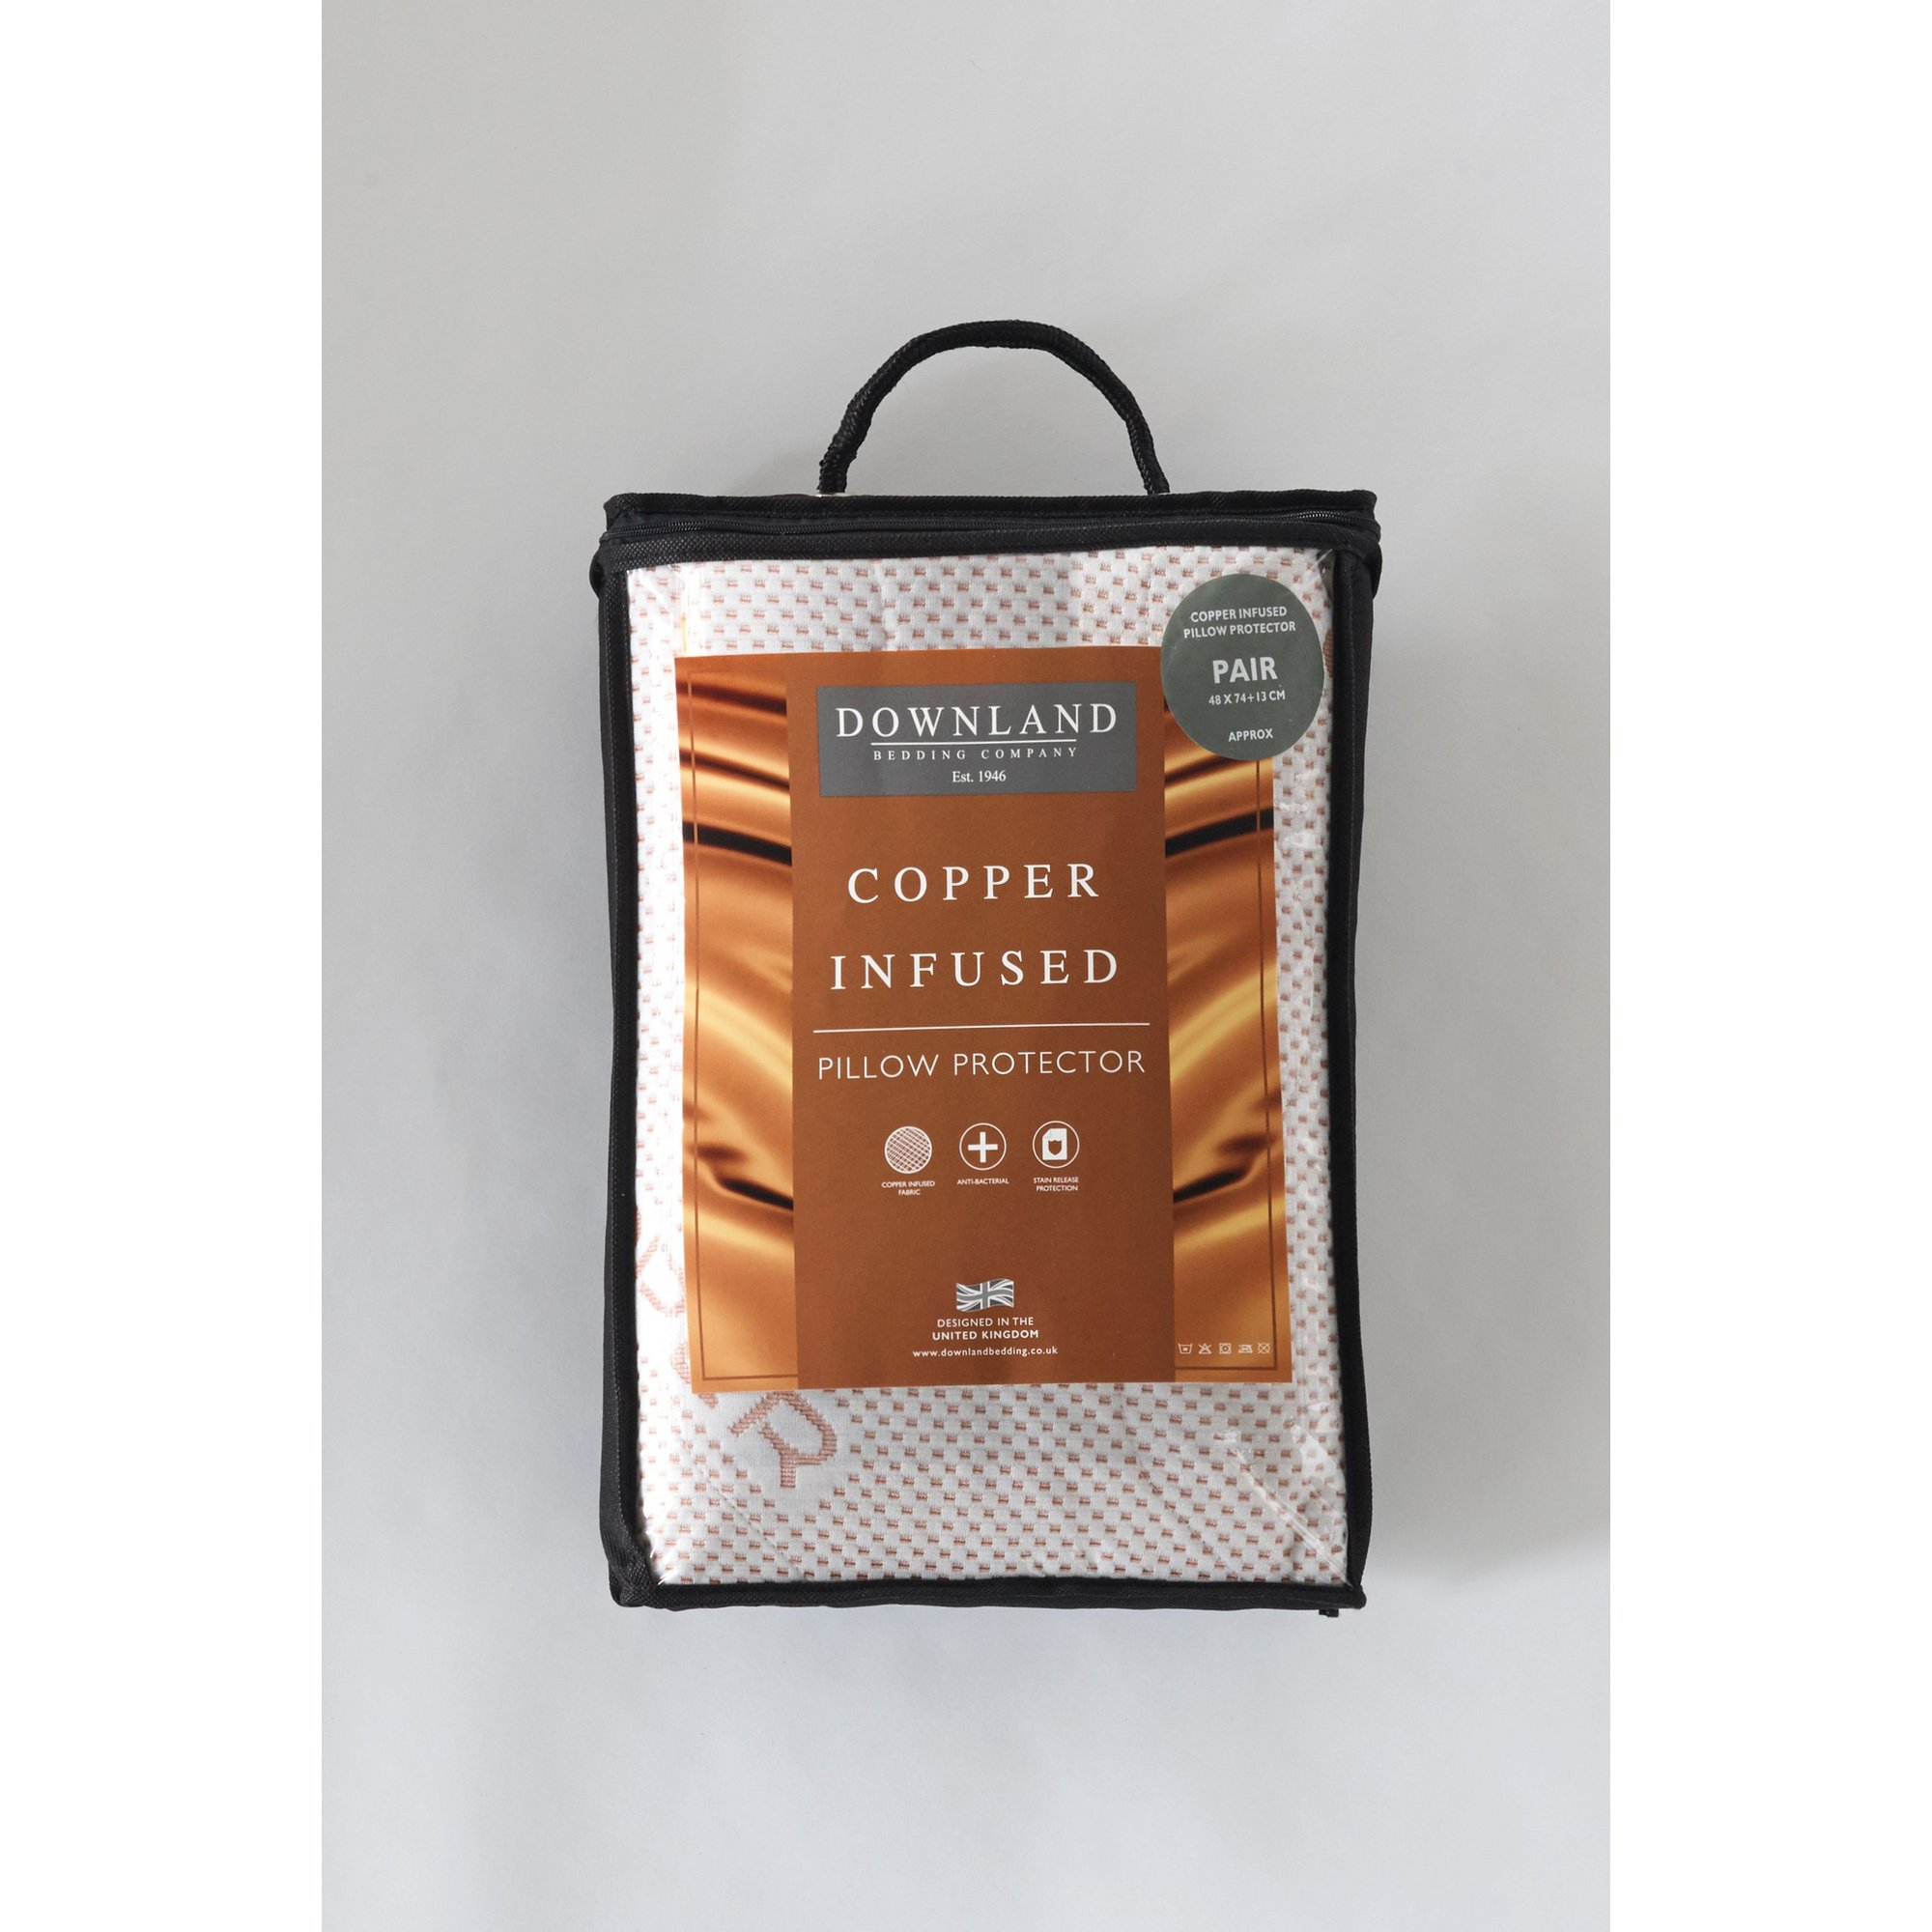 Image of Downland Copper Infused Pair of Pillow Protectors